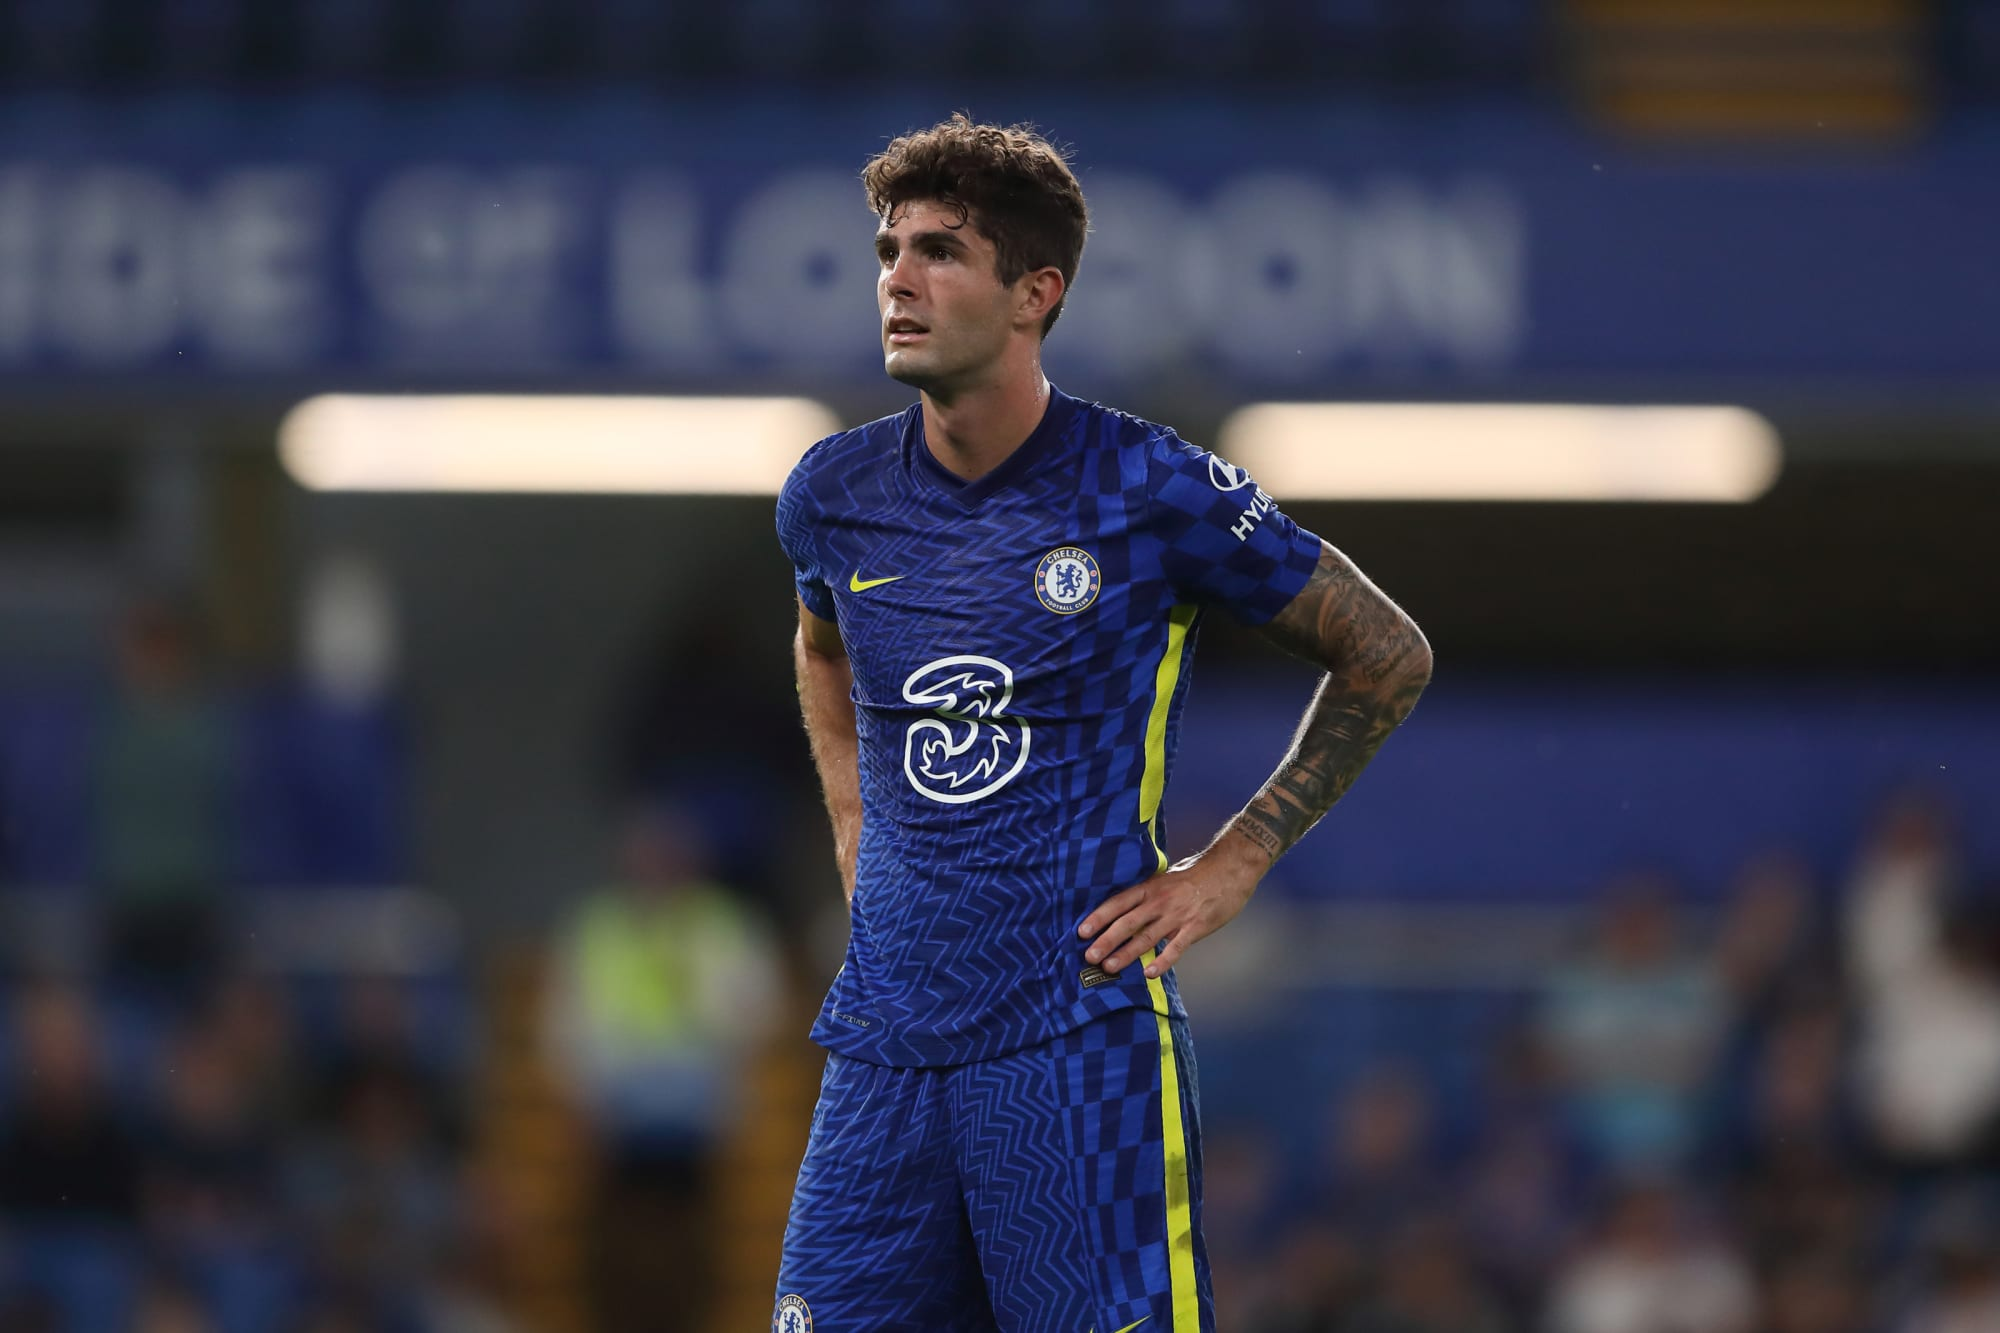 Chelsea needs to shut down Christian Pulisic for an extended period